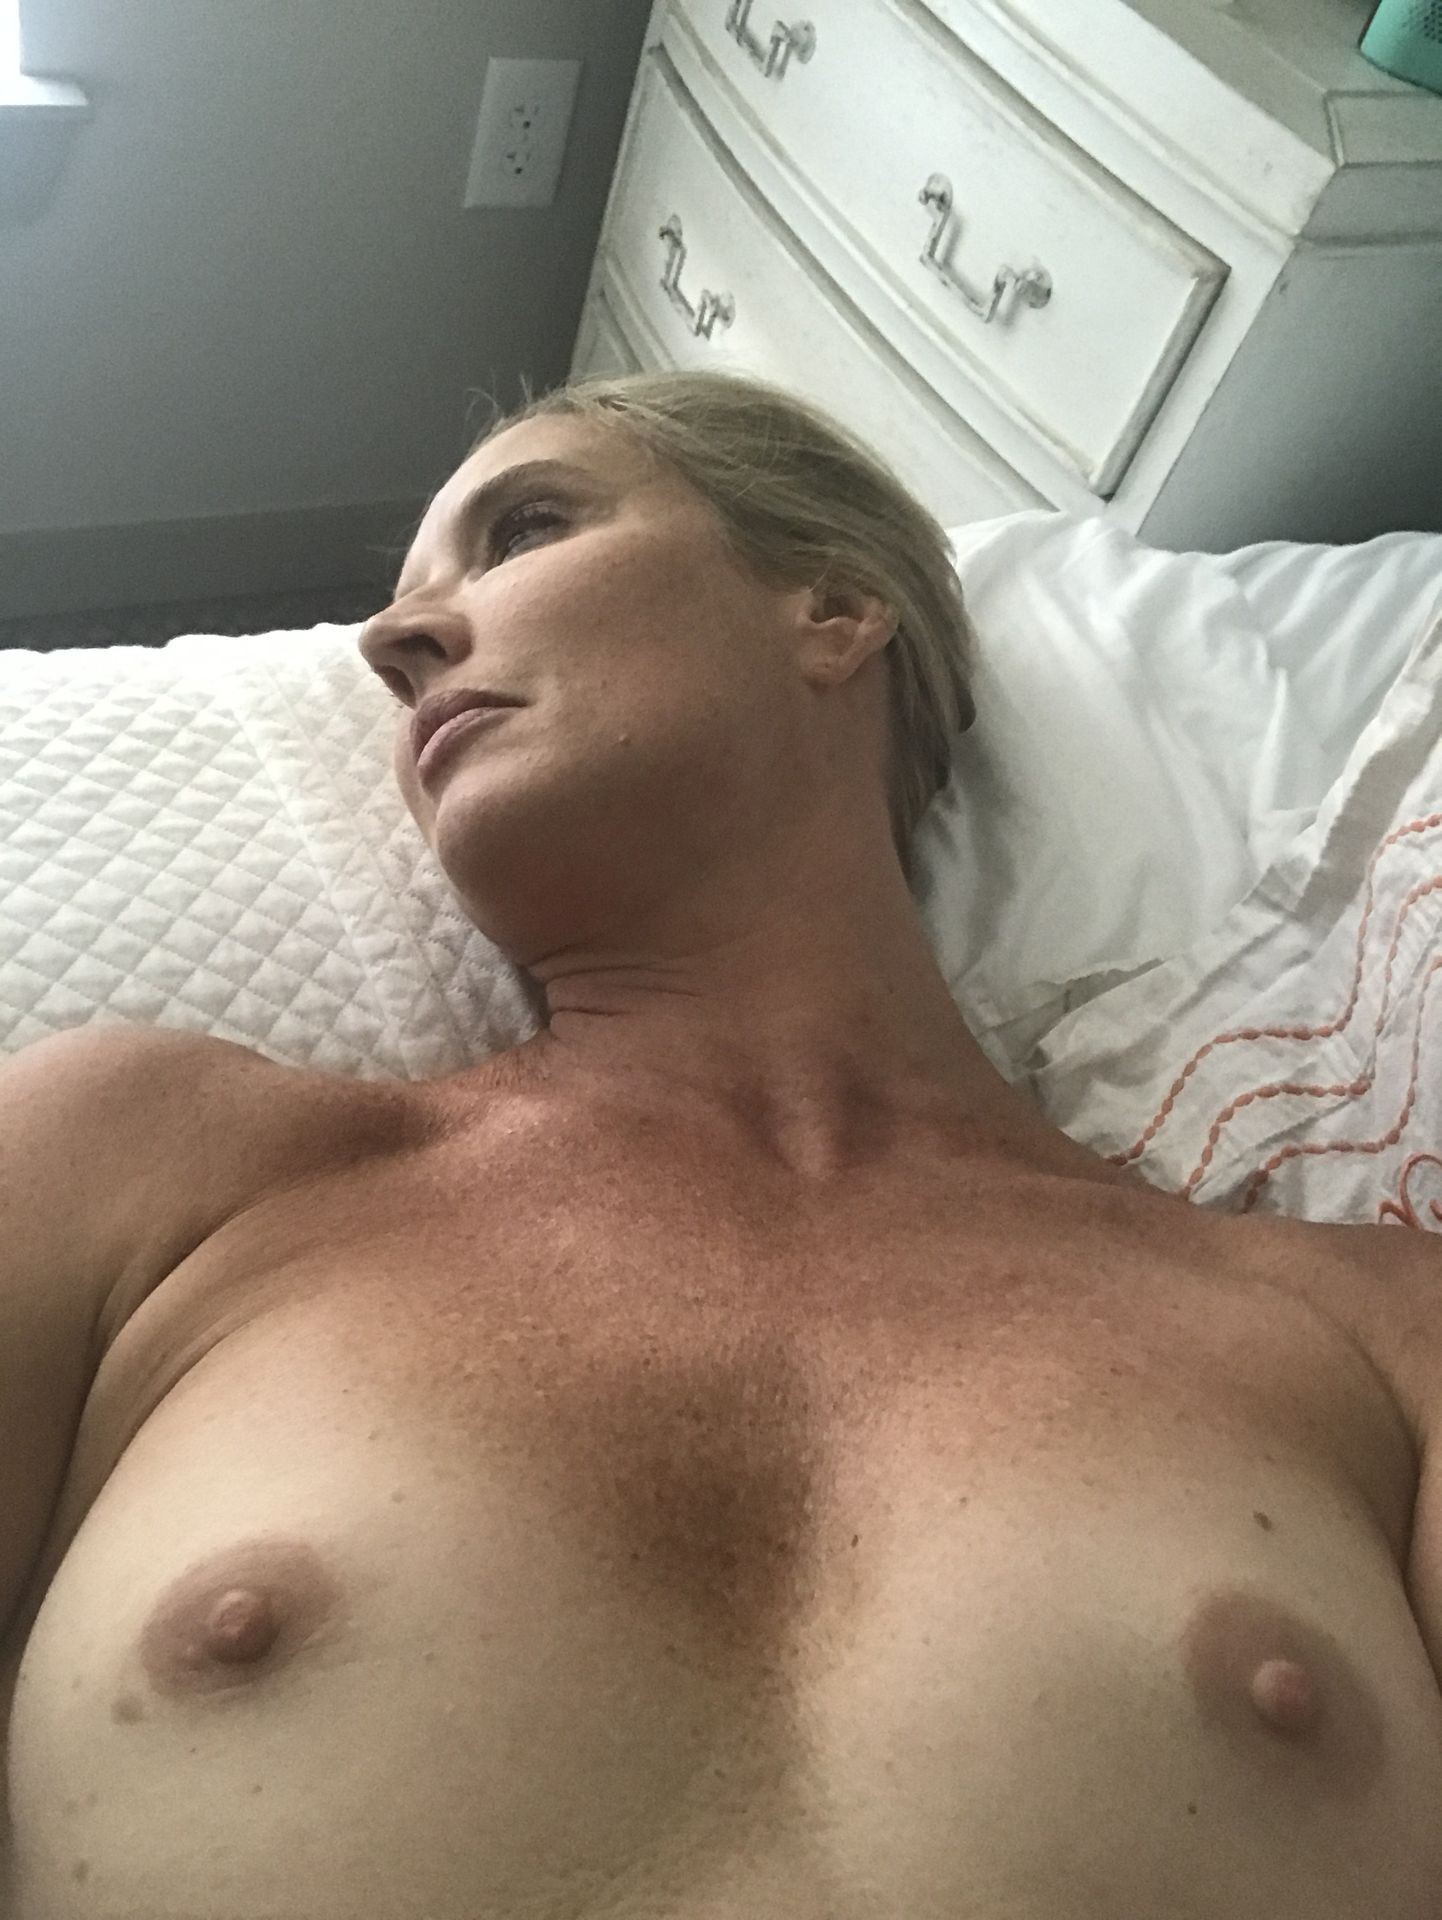 Laurie Dhue Nude Leaked thefappening.nu 2